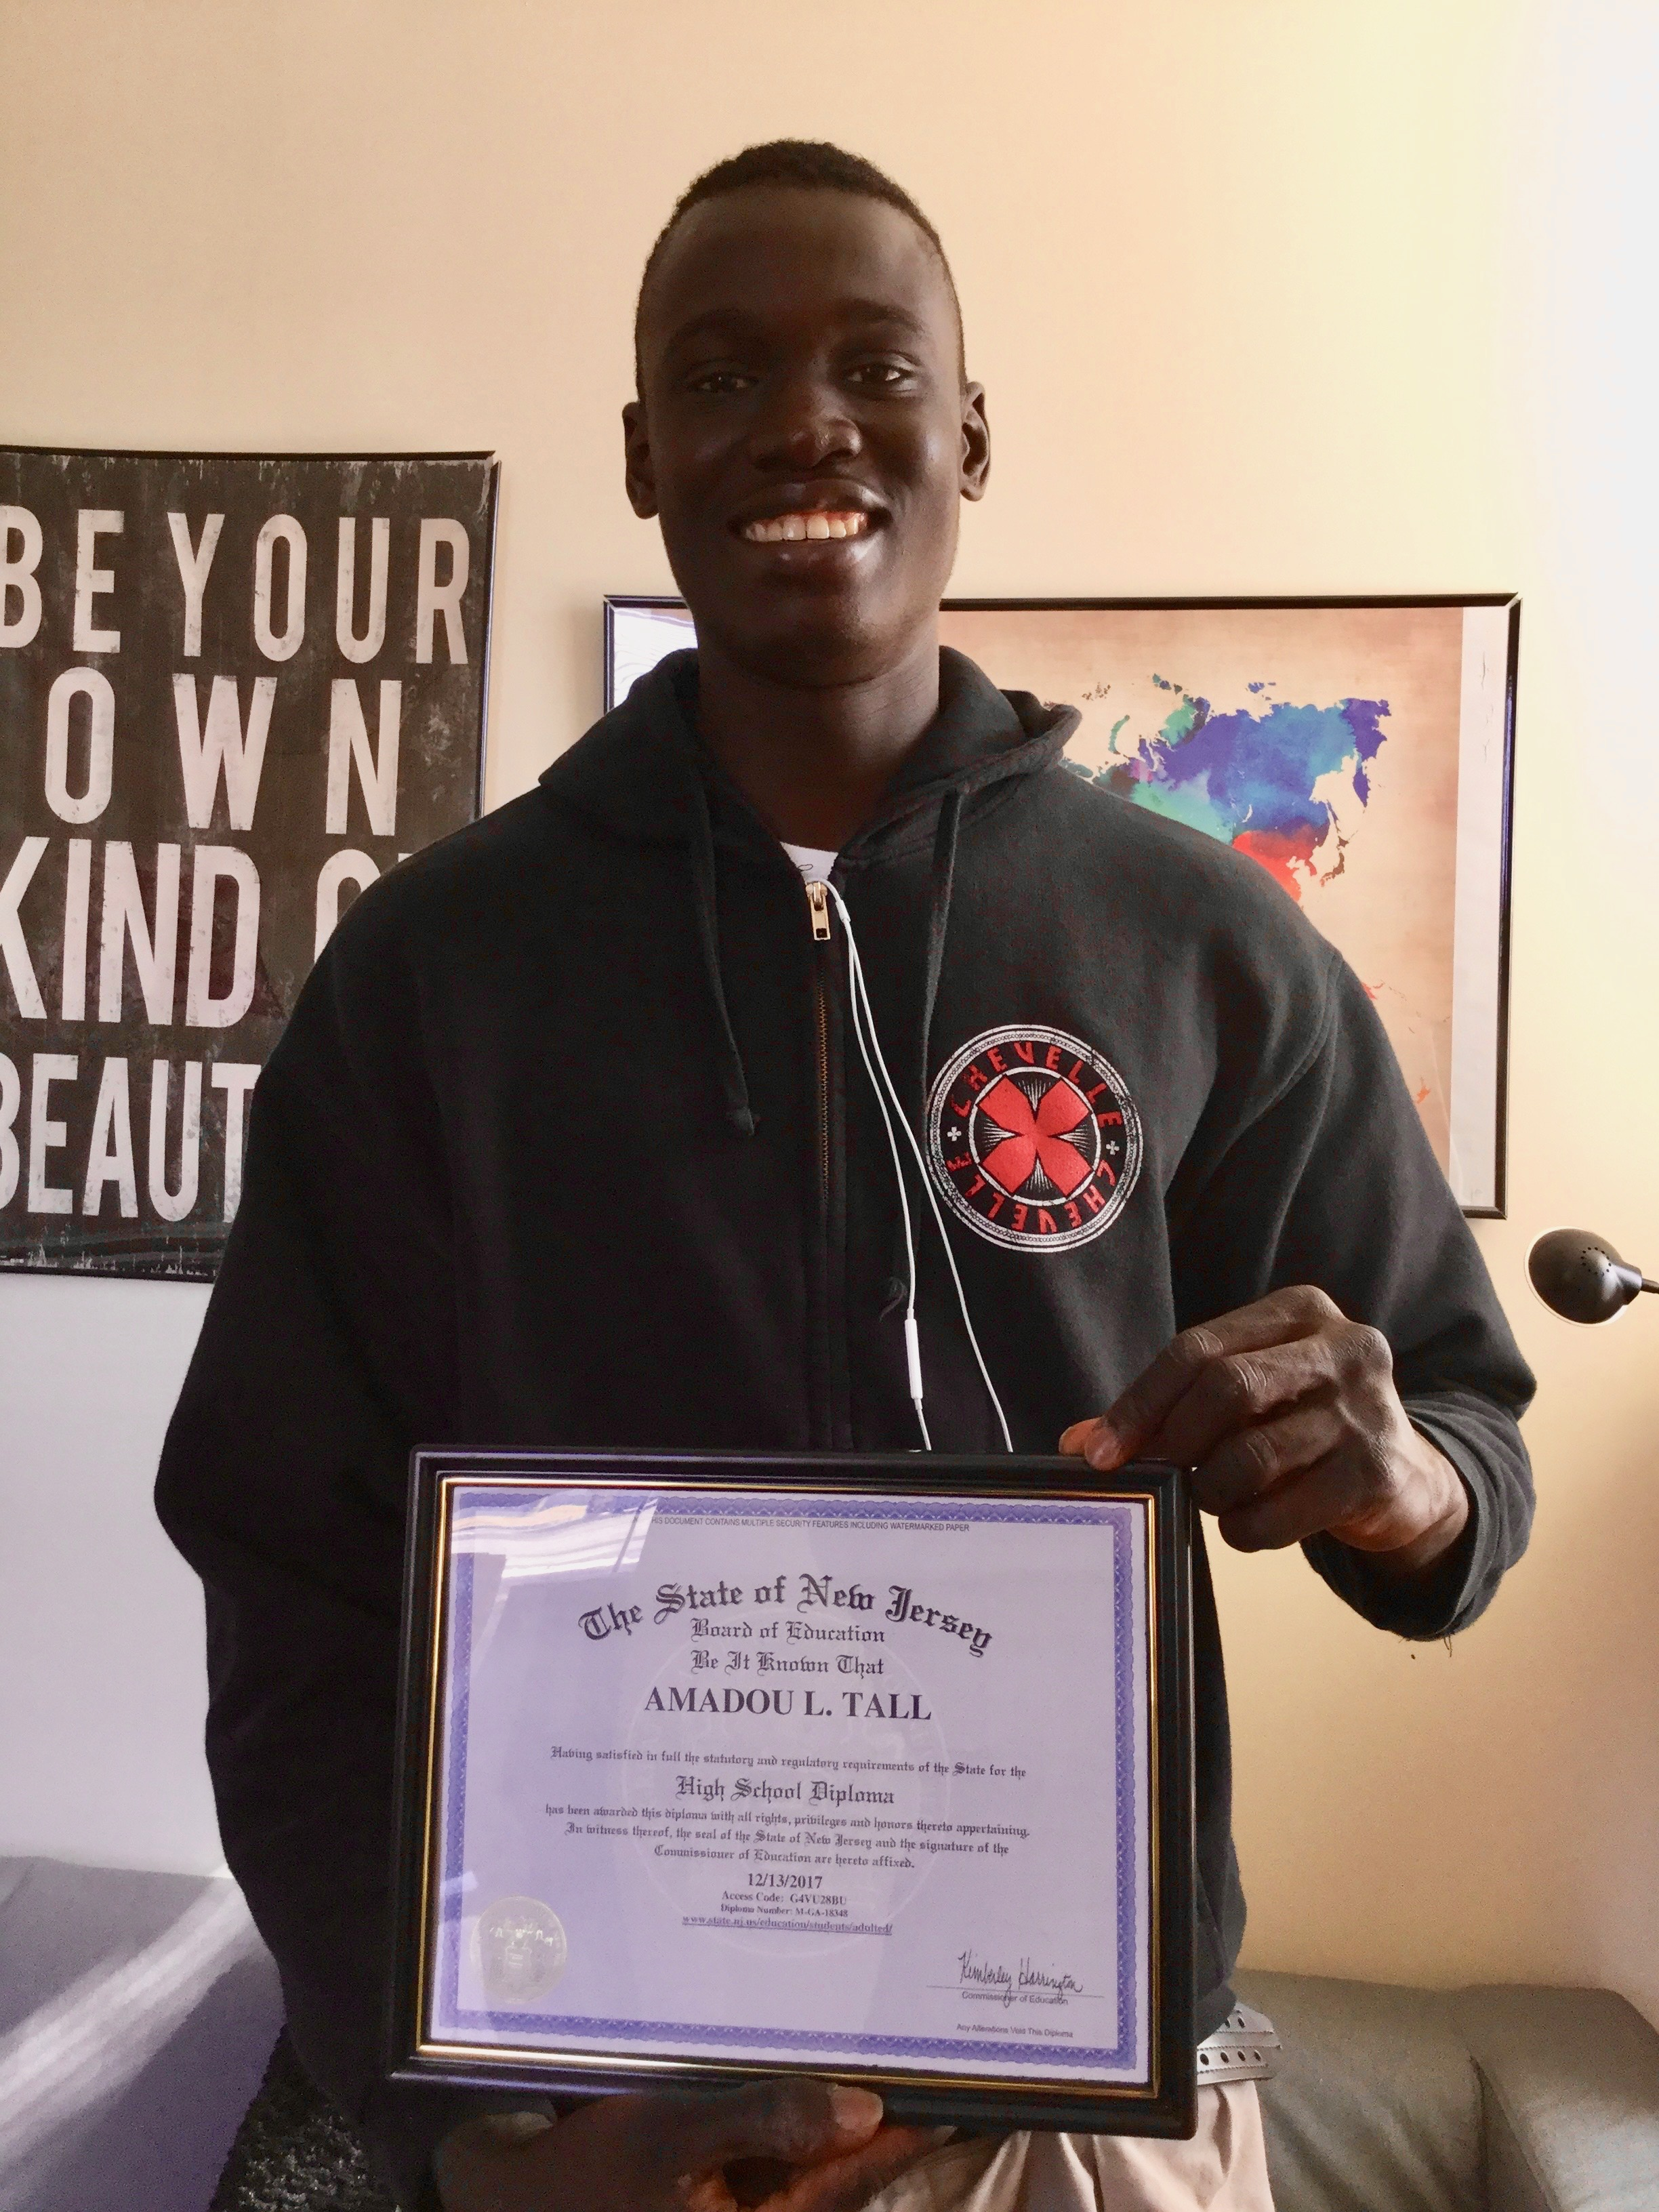 Amadou Tall persevered to earn his New Jersey high school diploma in 2017.